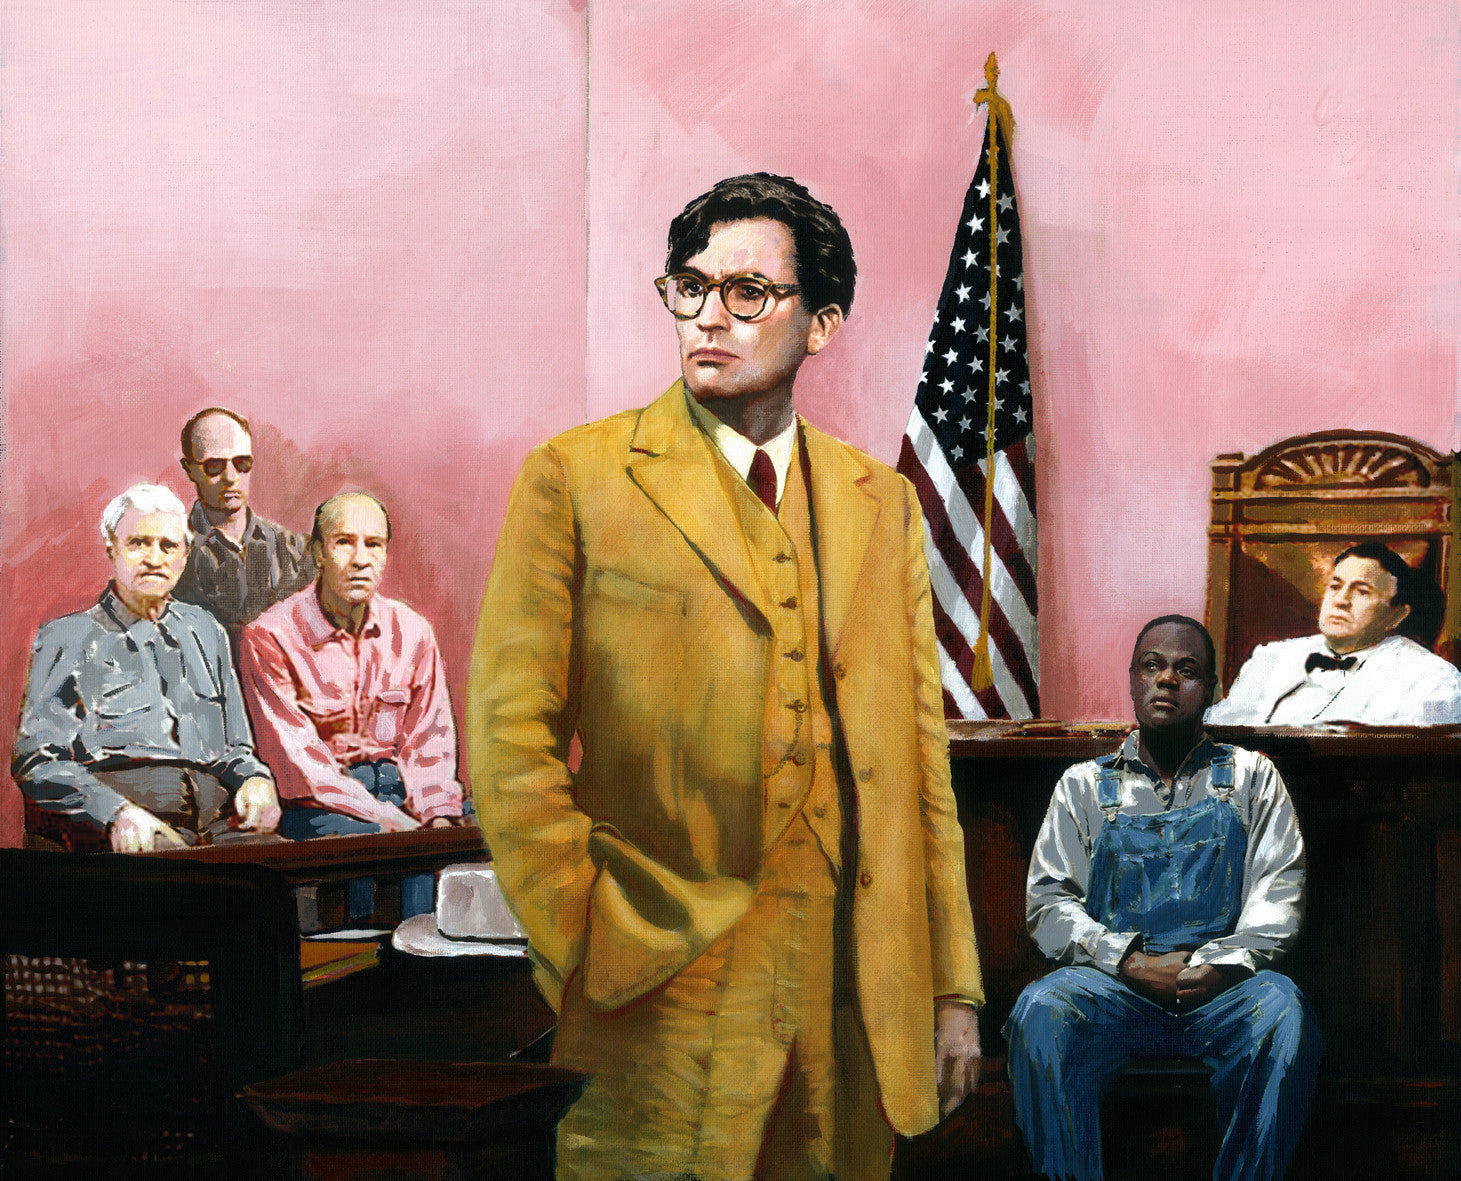 Atticus Finch argues against prejudice and bigotry. By artist Trevor Goring